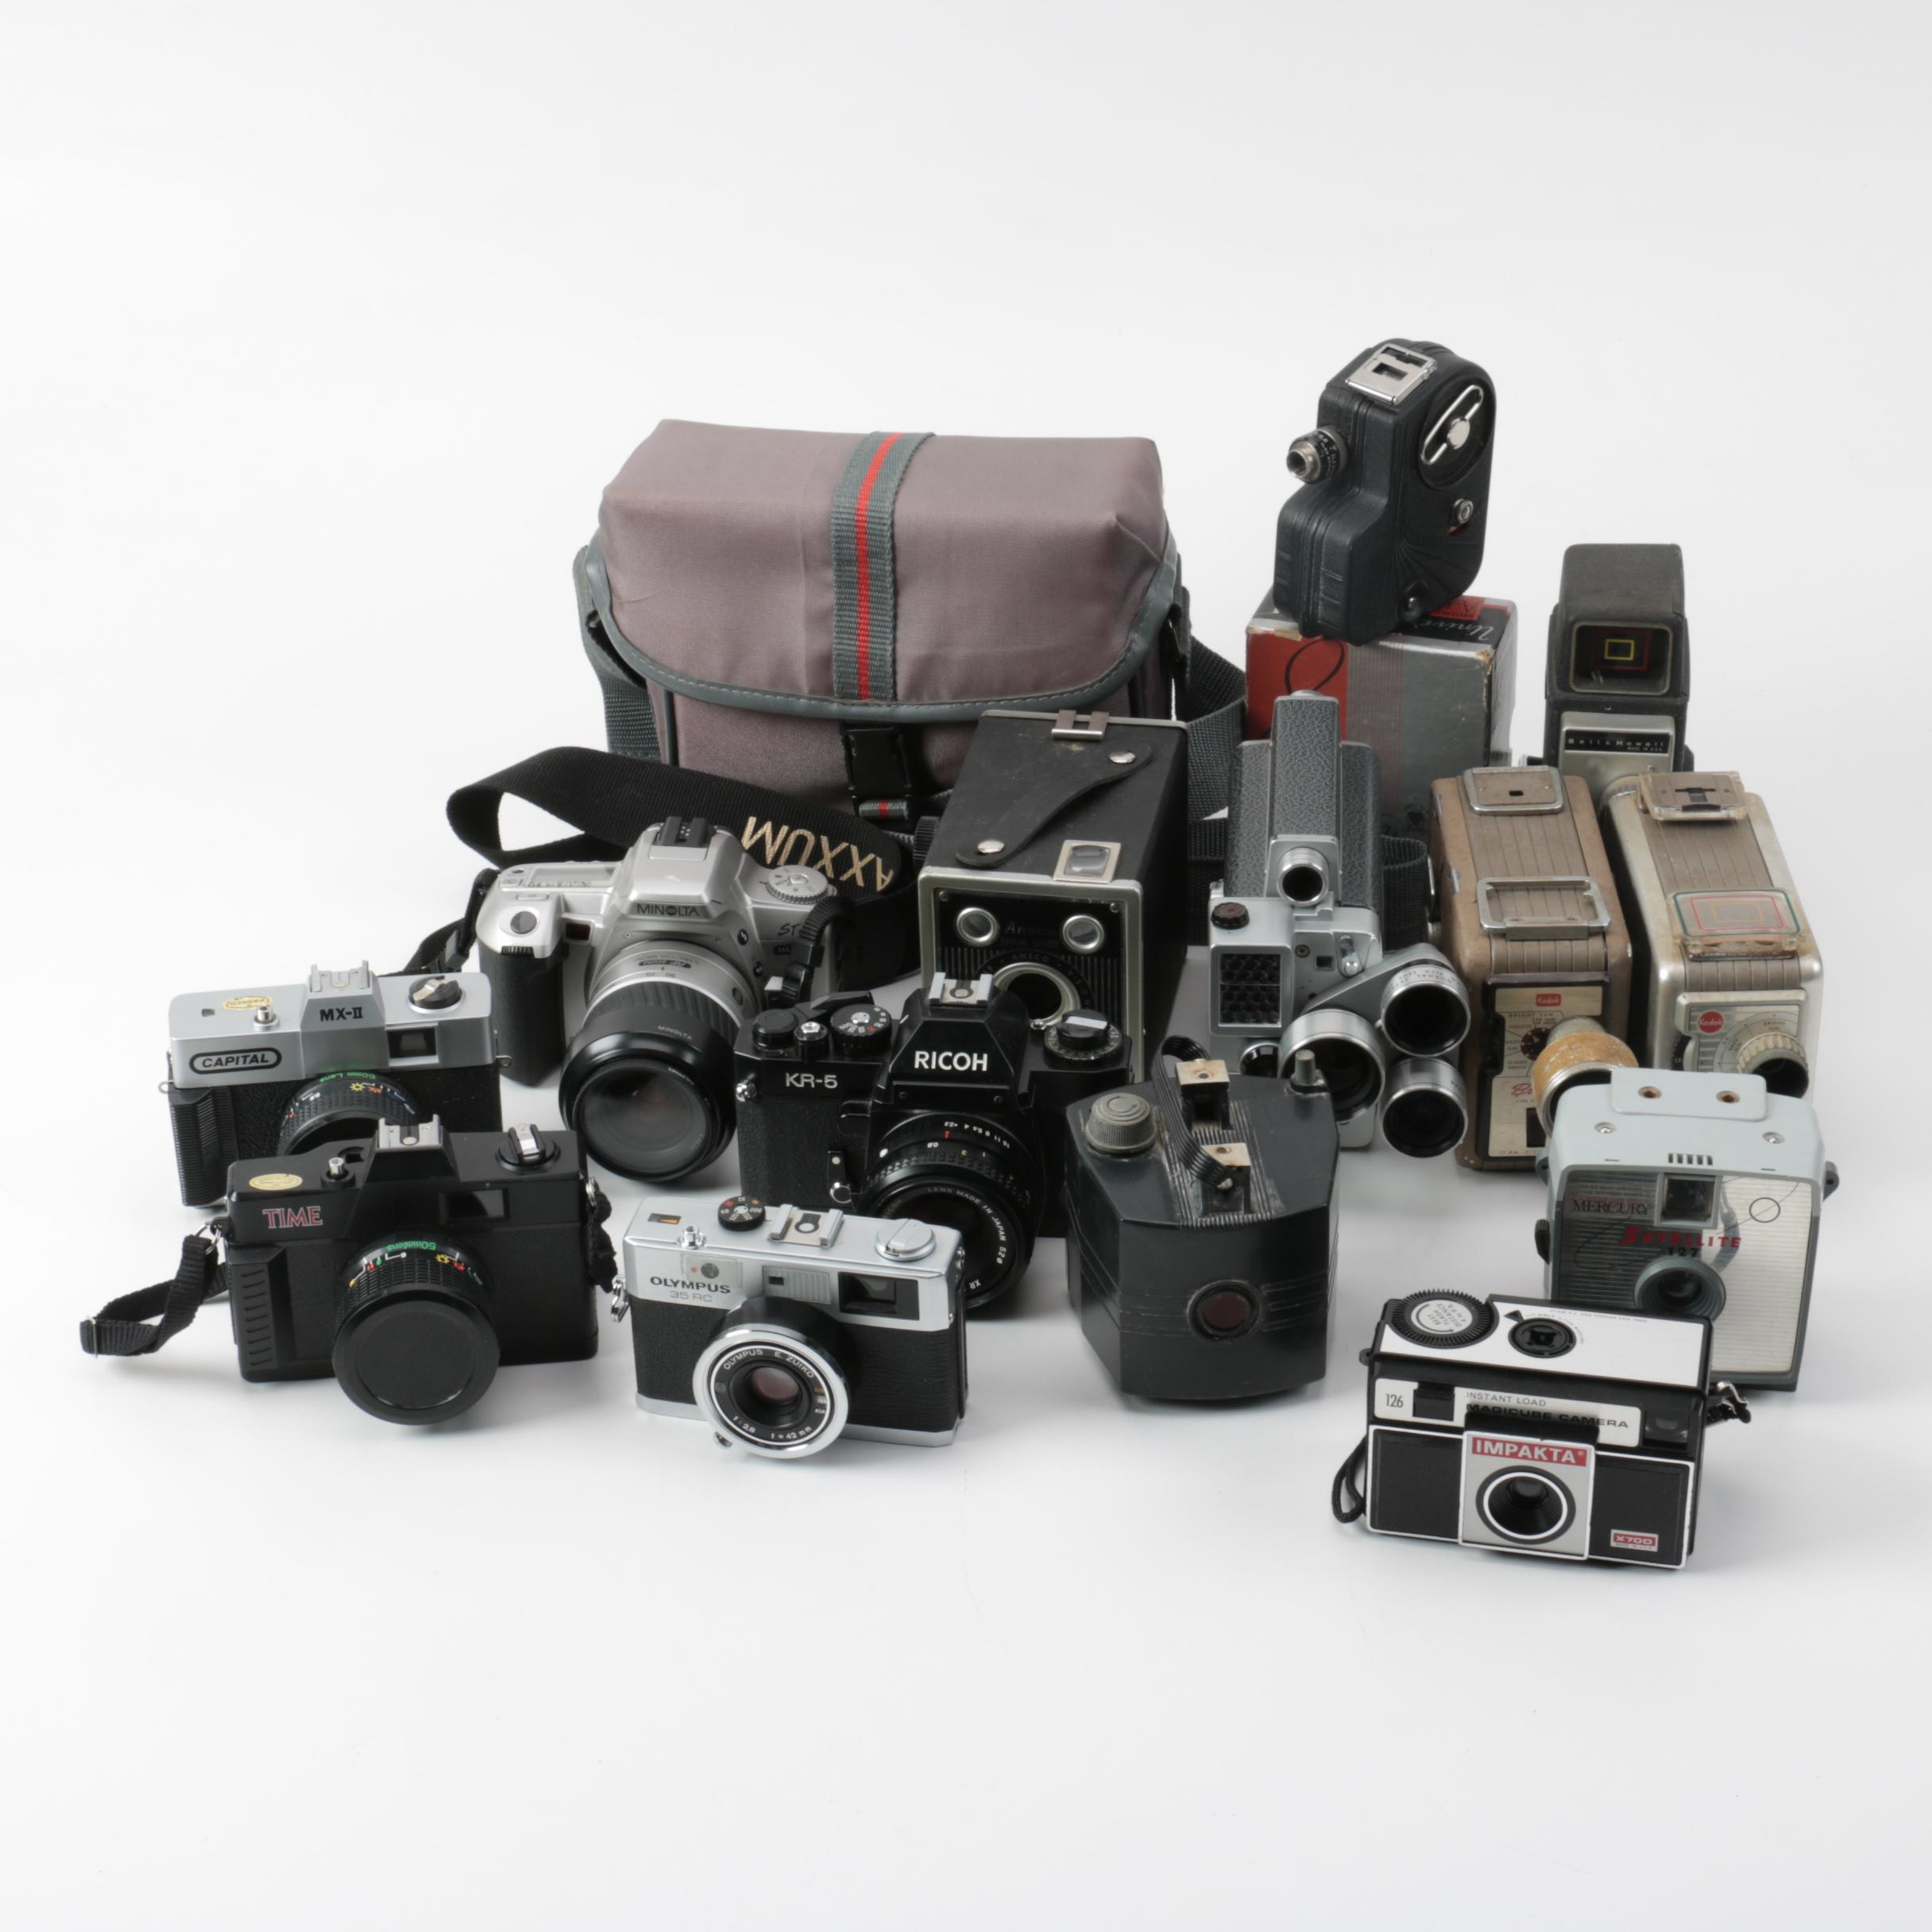 Olympus, Ricoh and Other Vintage Cameras